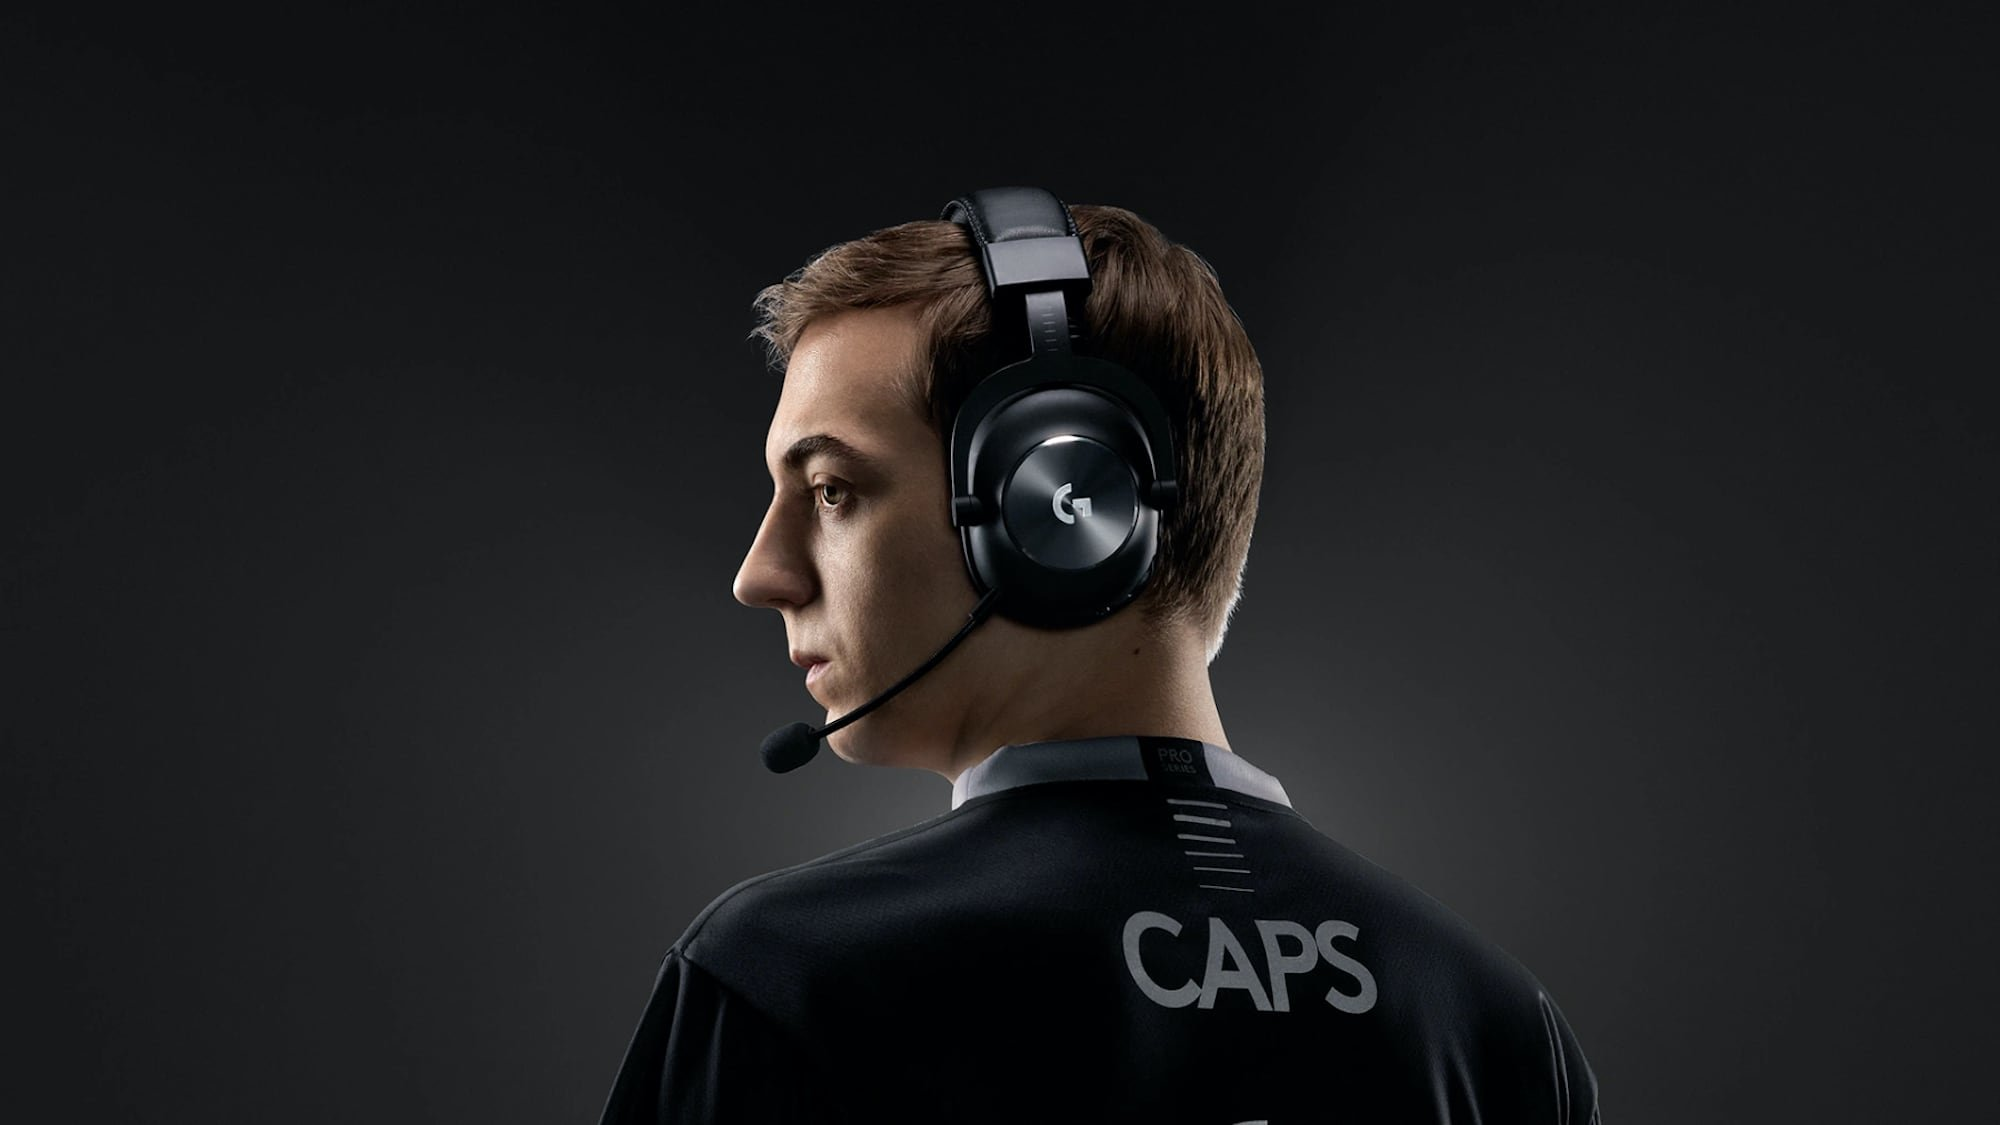 Logitech G PRO X Wireless Lightspeed Gaming Headset is here to help you win